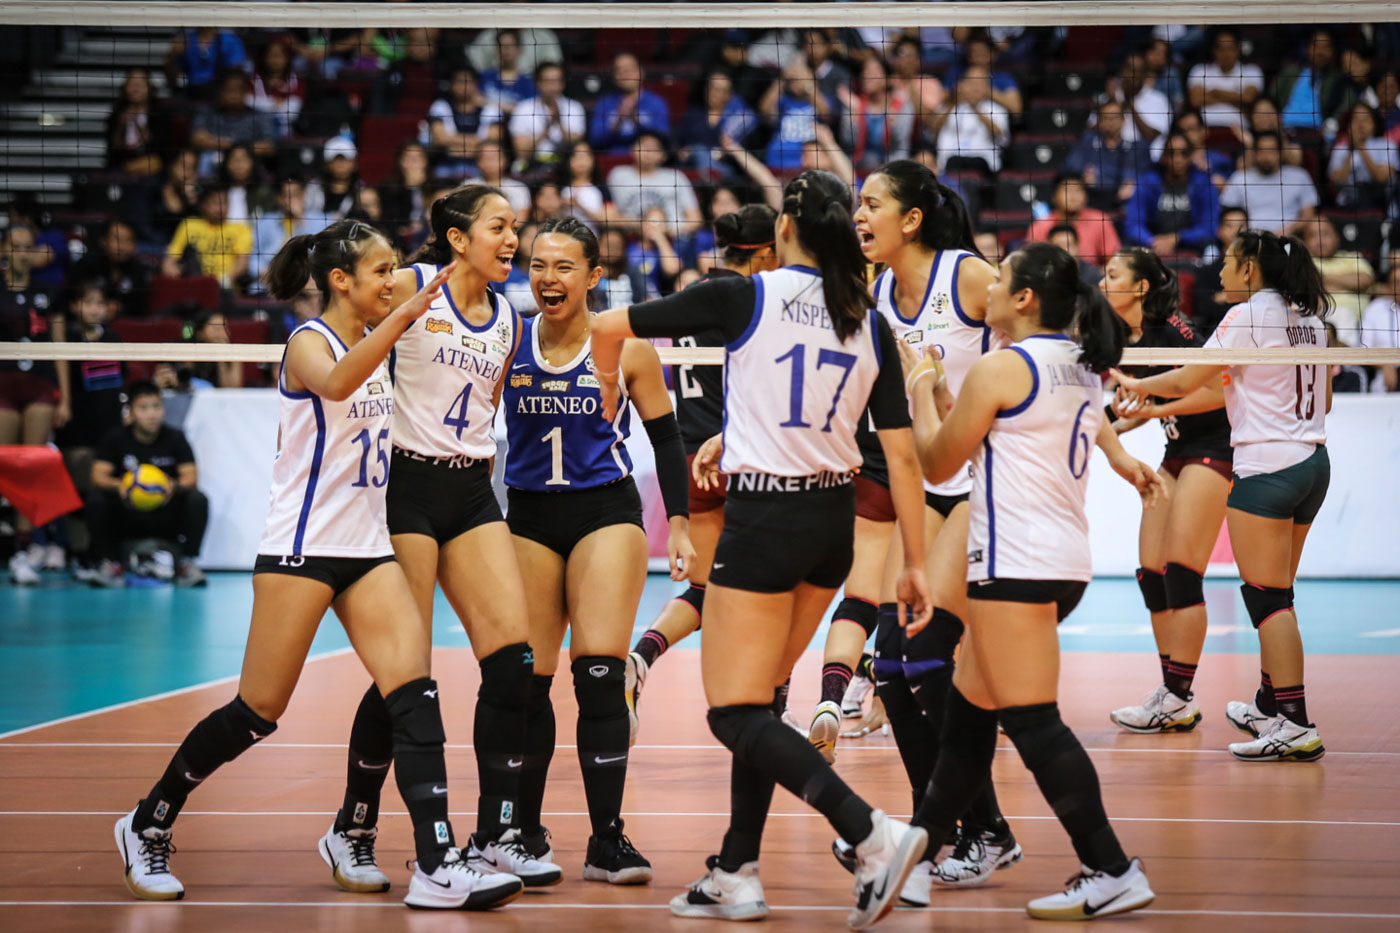 Uaap Volleyball News And Updates Rappler